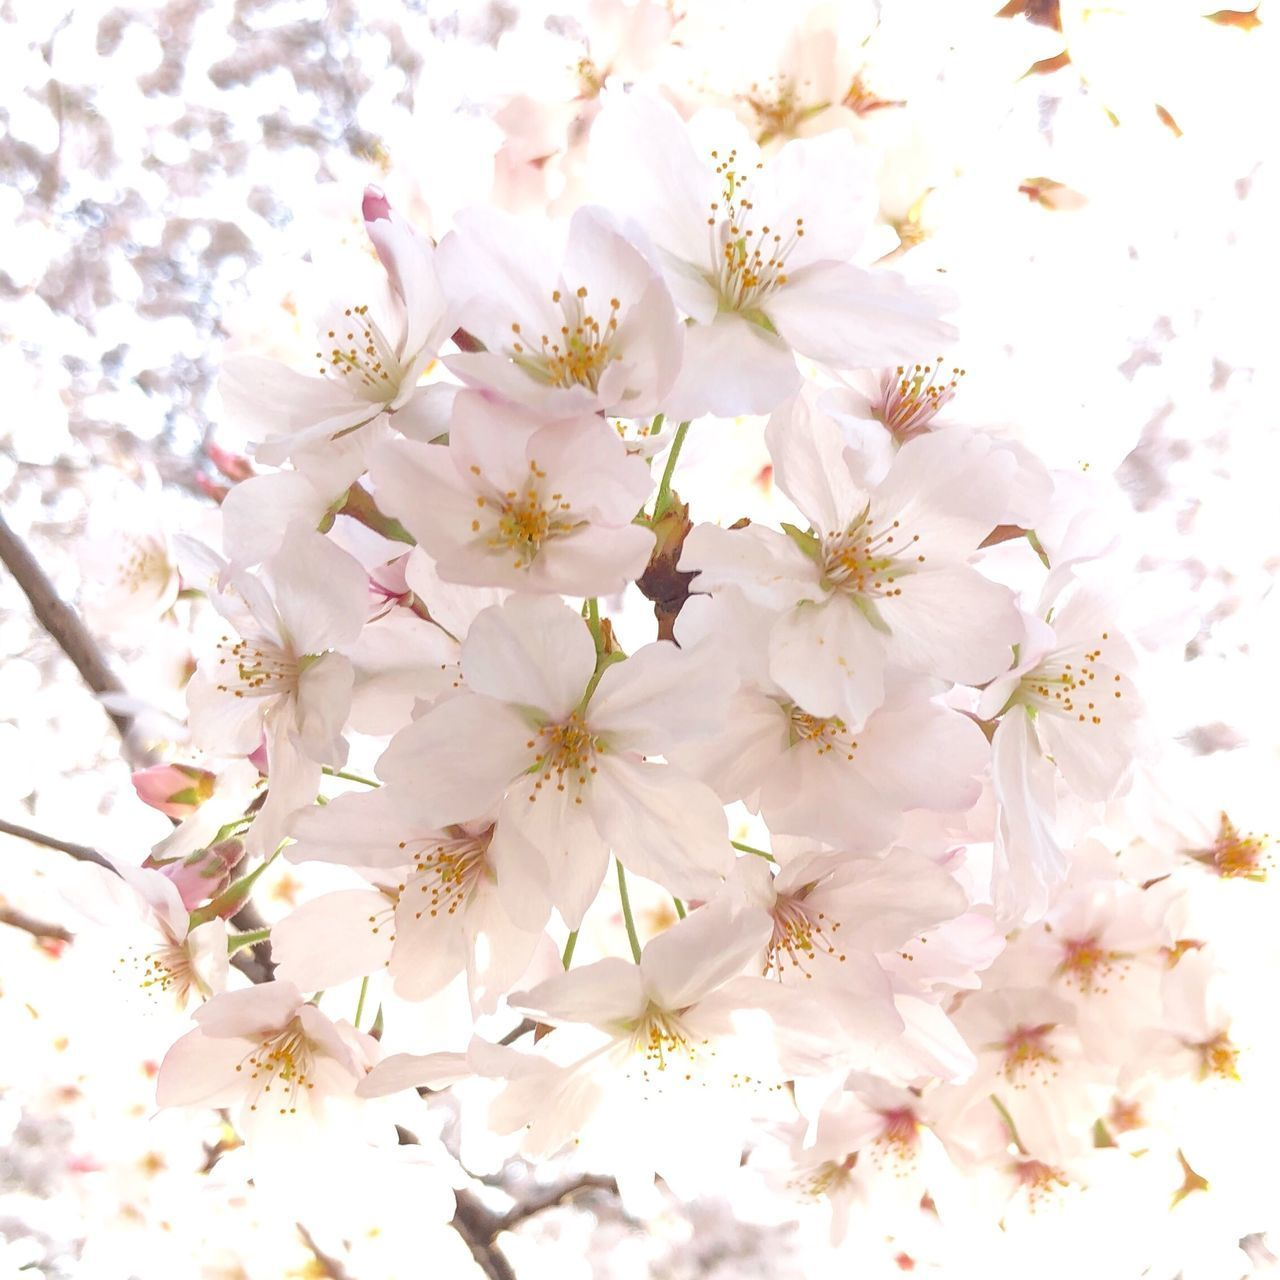 flower, flowering plant, freshness, plant, beauty in nature, fragility, vulnerability, close-up, petal, growth, no people, nature, white color, full frame, inflorescence, backgrounds, flower head, blossom, day, springtime, cherry blossom, pollen